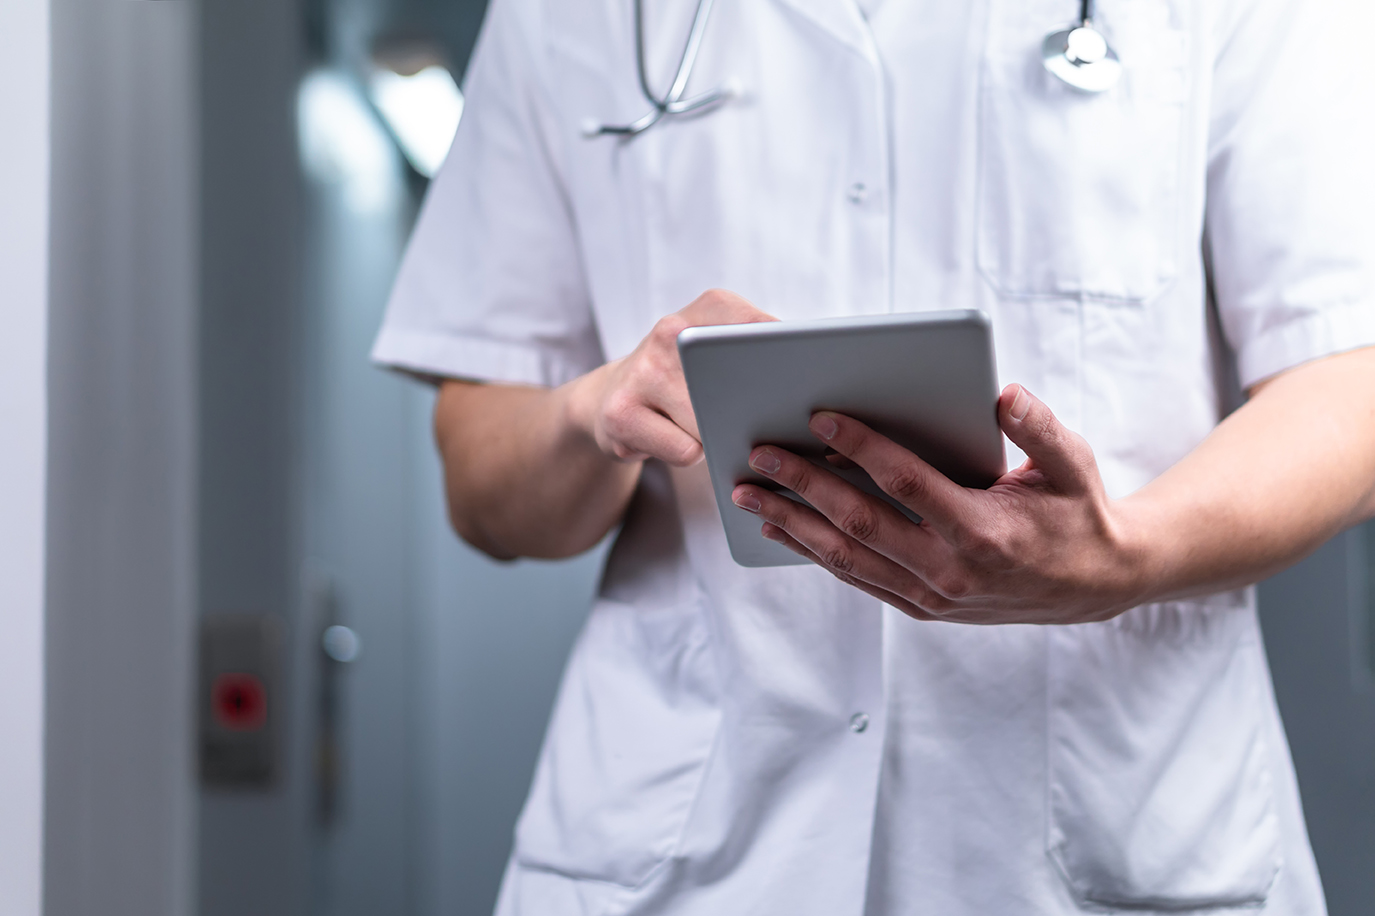 photo of male doctor in uniform with stethoscope coming out of the elevator and using computer tablet in hospital. Modern medical concept